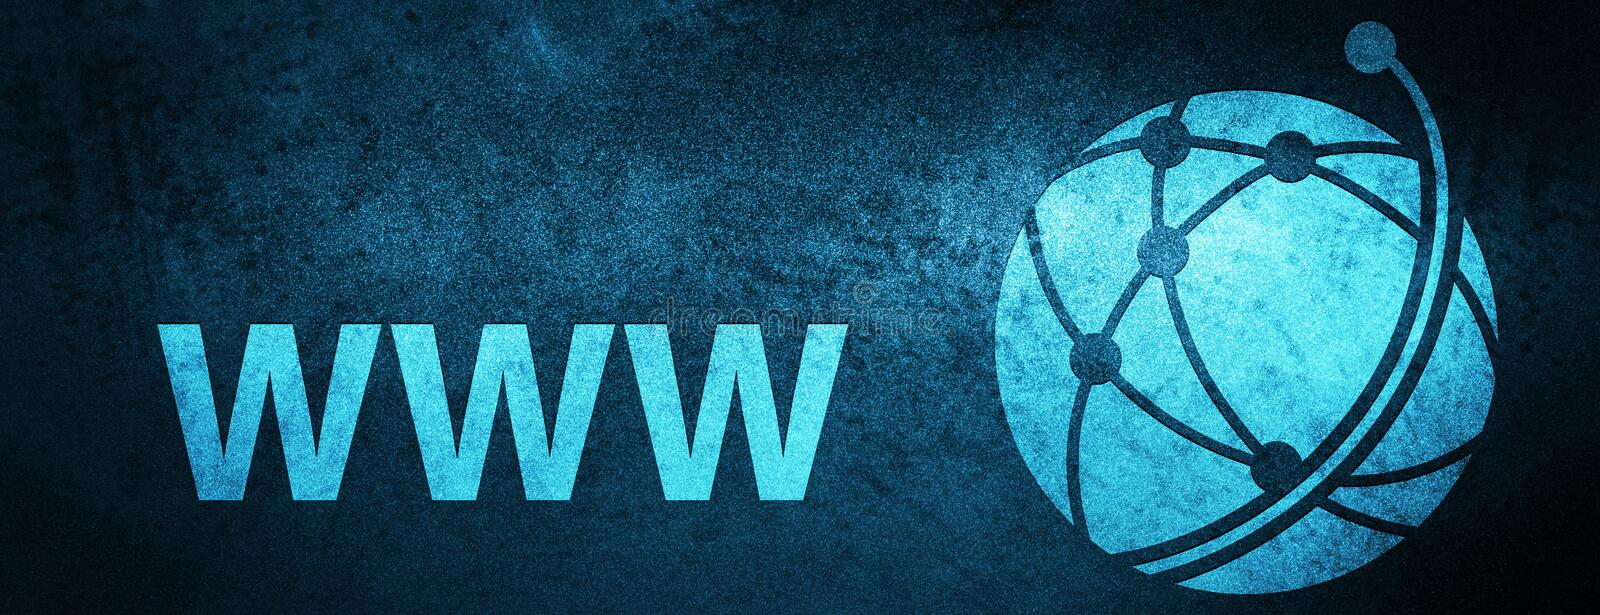 WWW (global network icon) special blue banner background. WWW (global network icon) isolated on special blue banner background abstract illustration vector illustration